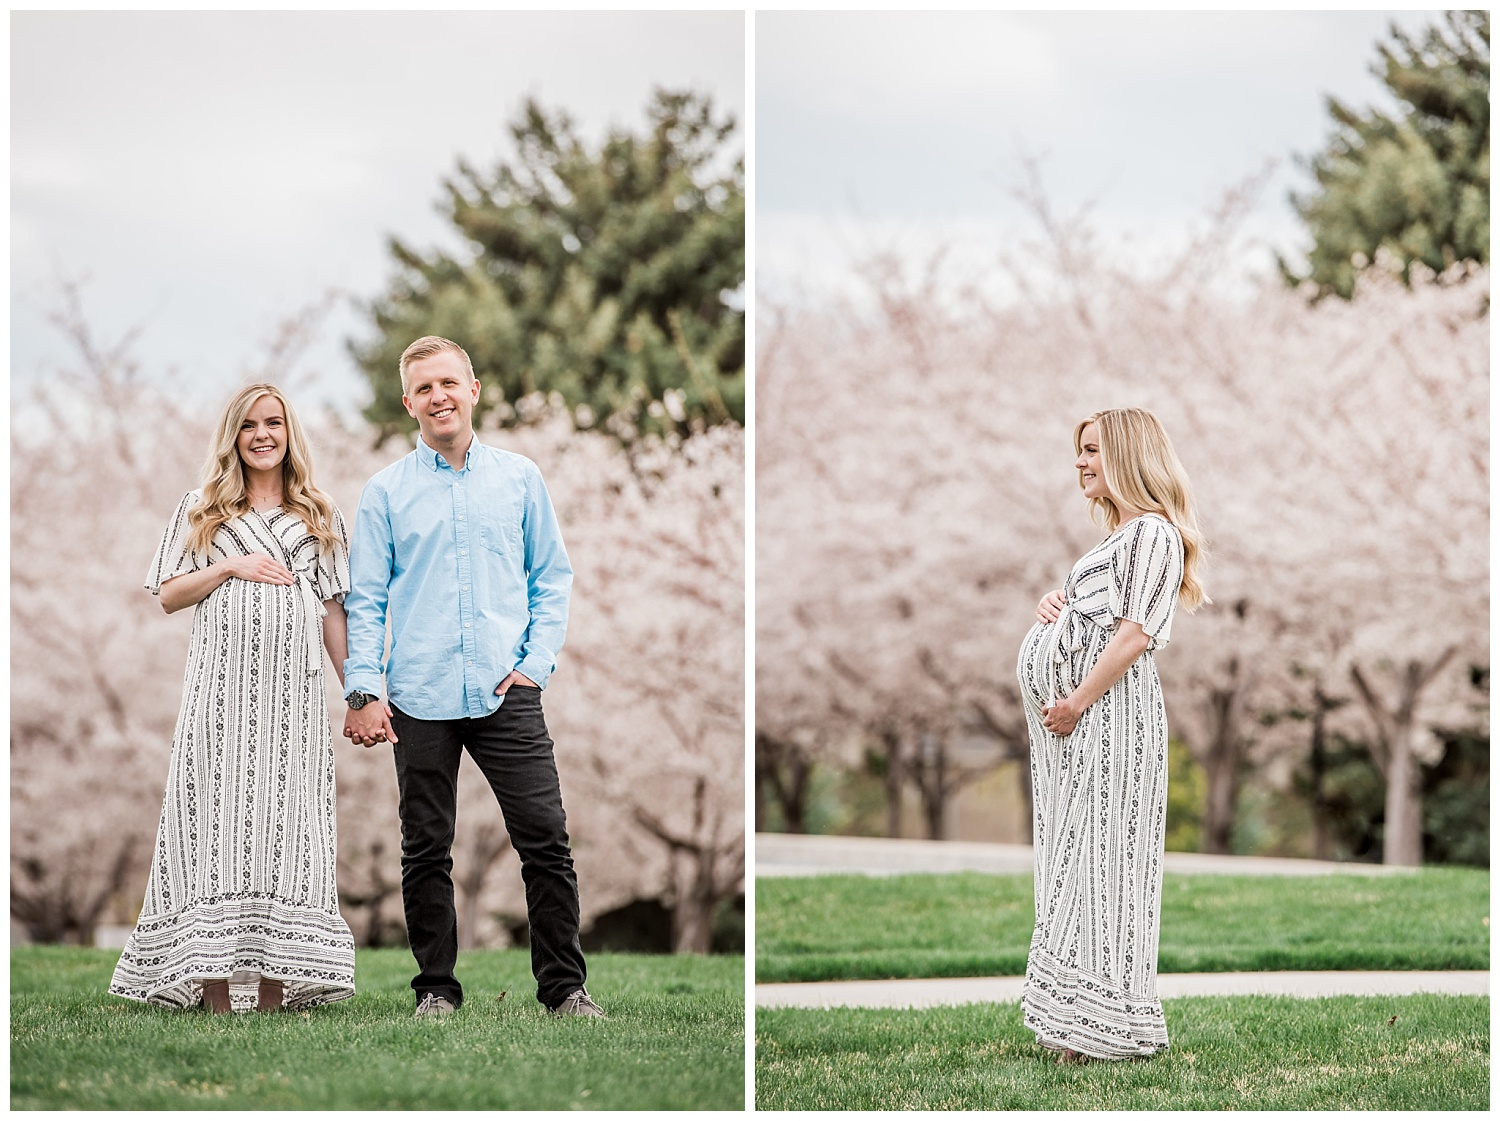 Dan Page Photography, Utah State Capitol Maternity Session, Spring Cherry Blossoms (4).jpg